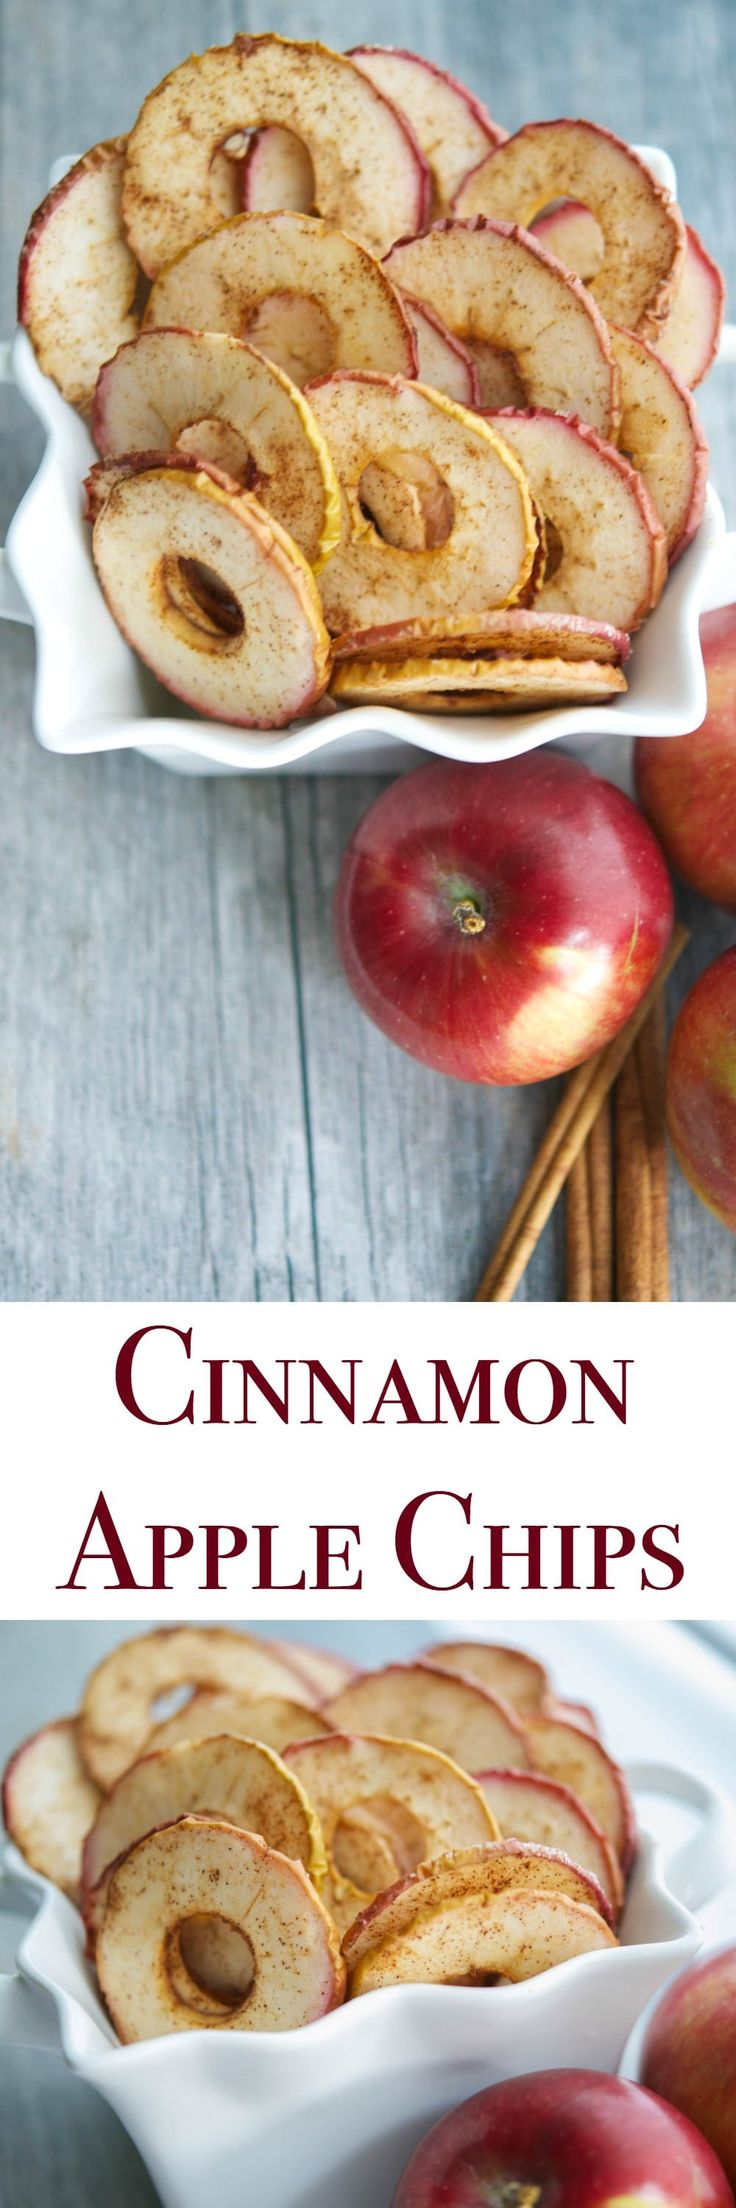 Cinnamon Apple Chips, made with a few simple ingredients like McIntosh apples, cinnamon and sugar are a healthy snack your whole family will love. via @CarriesExpKtchn